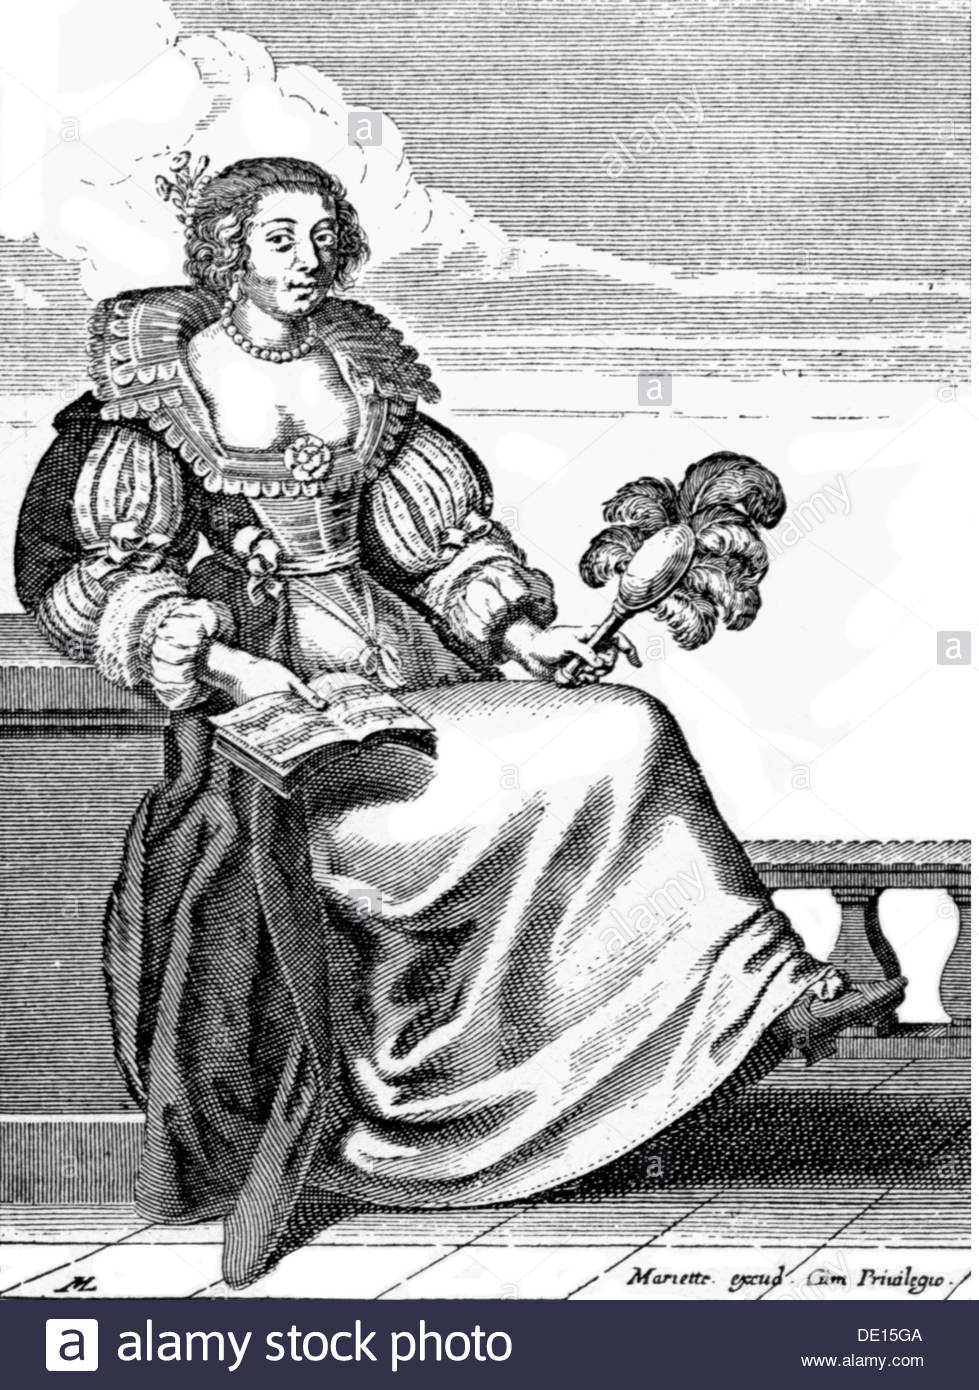 17th Century Clothing Stock Photos & 17th Century Clothing Stock.